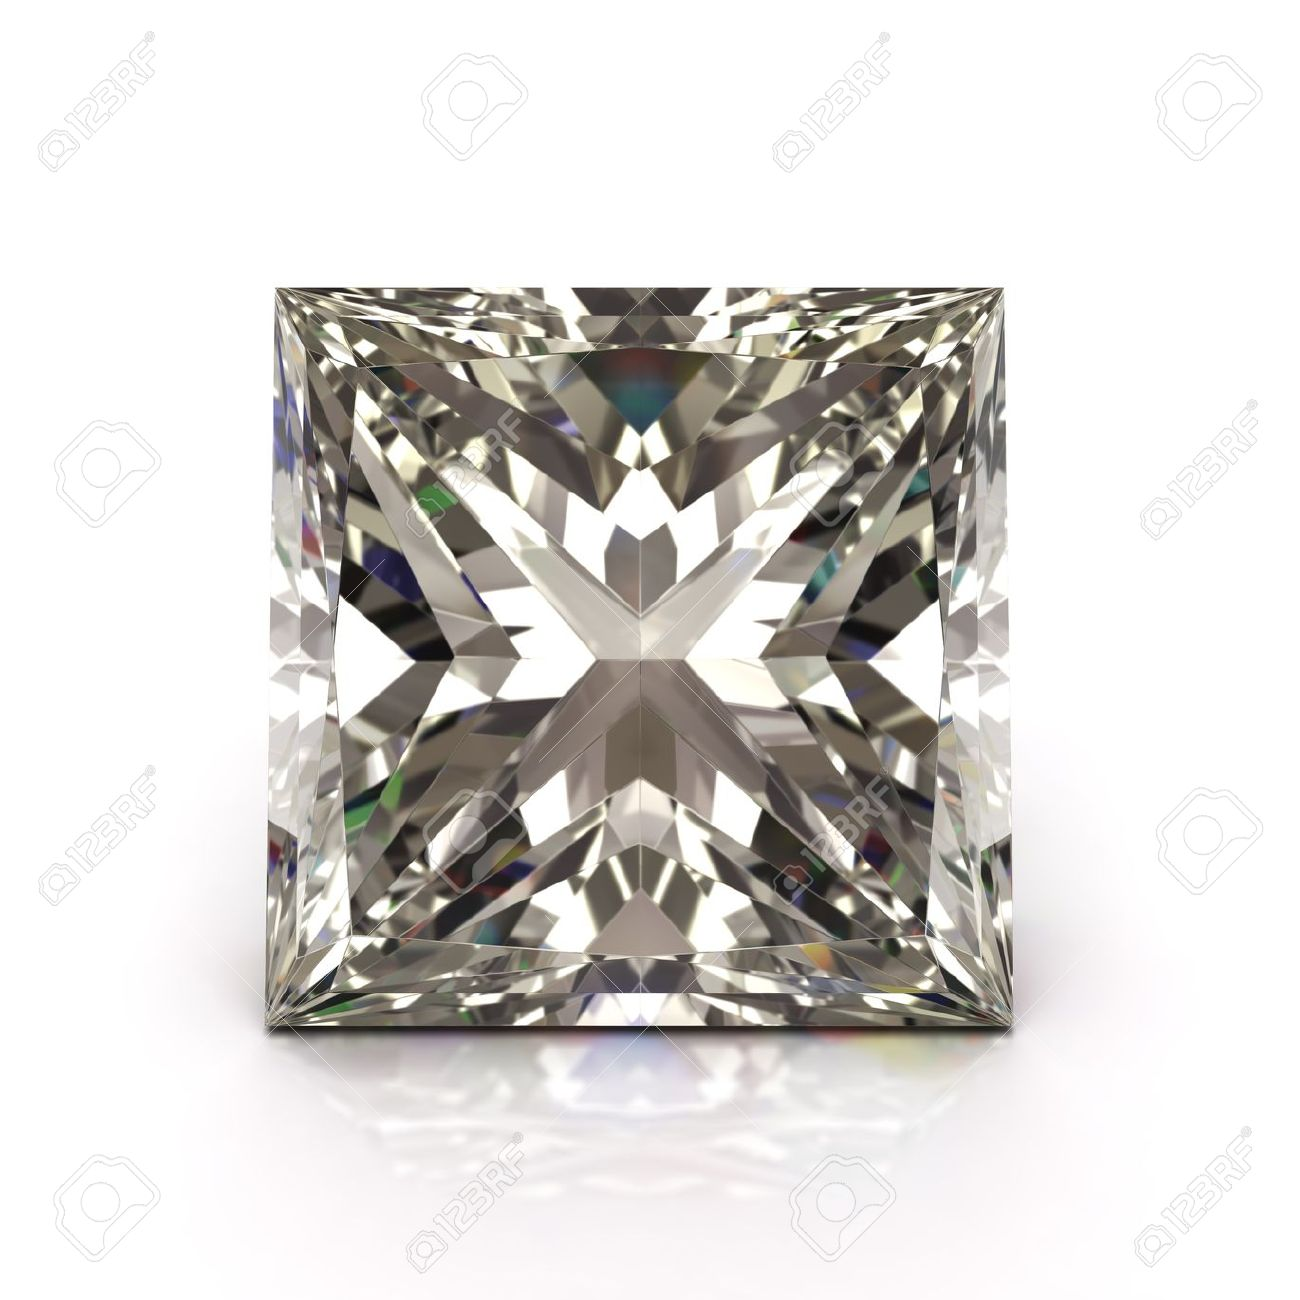 Princess cut diamond on white  Diamonds jewel   High quality 3d render with HDRI lighting and ray traced textures Stock Photo - 14829847